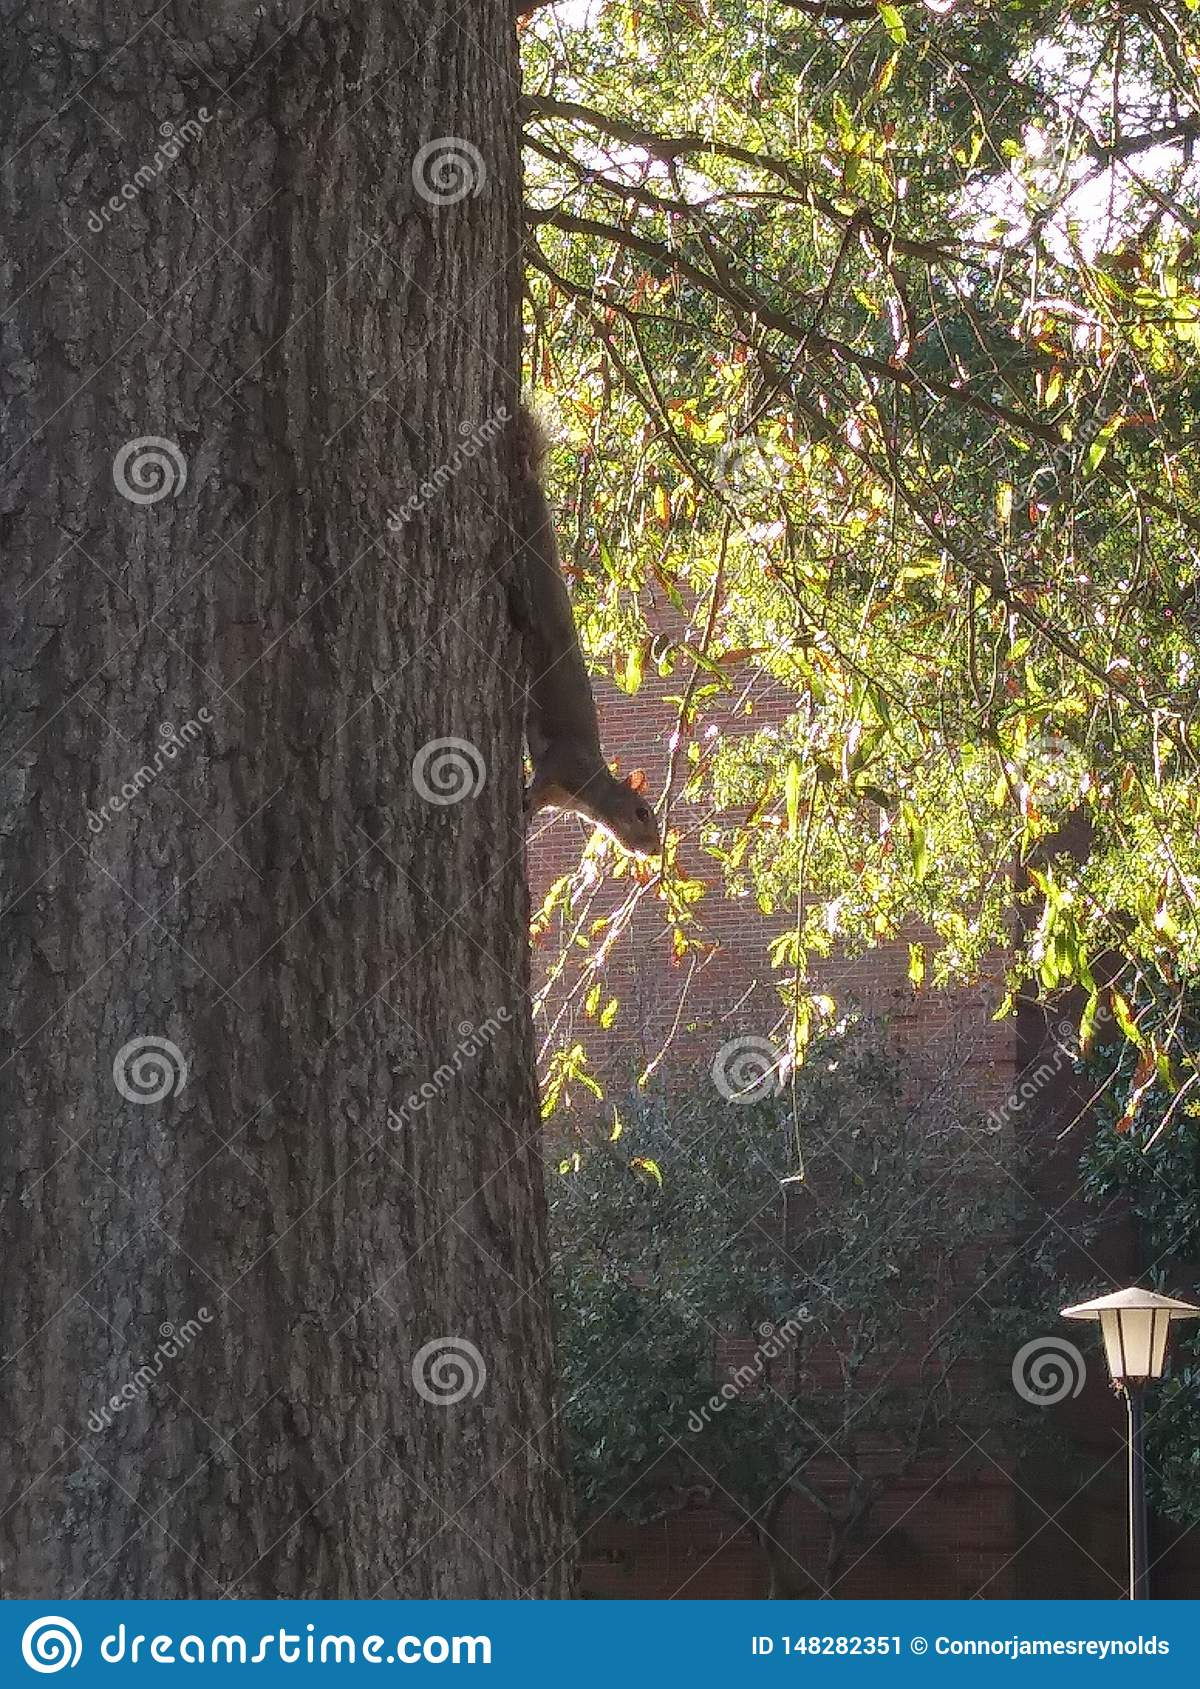 Squirrel watches from tree